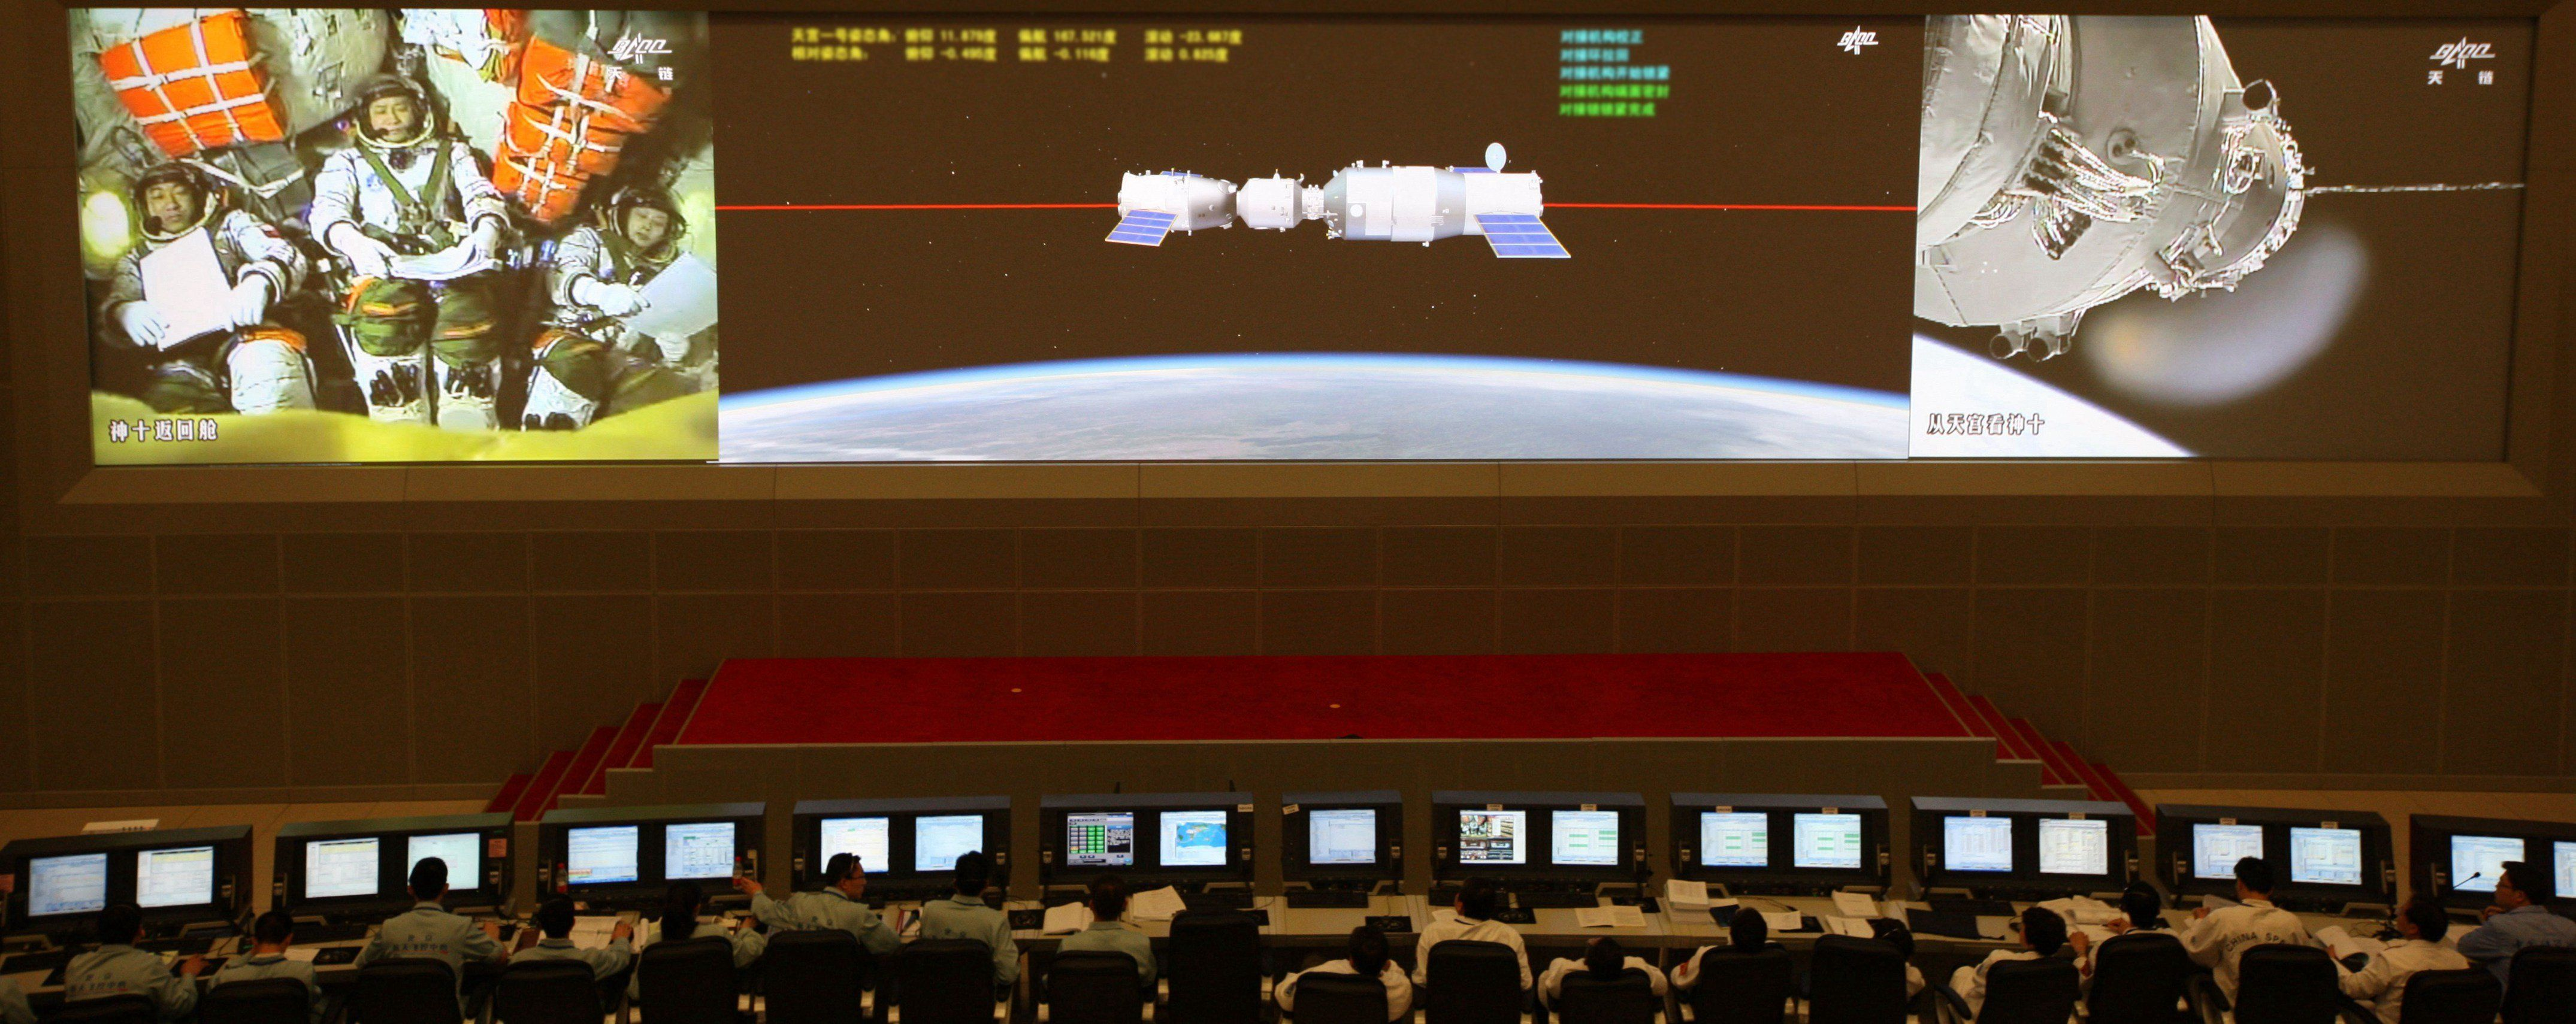 The Tiangong-1 re-entered Earth's atmosphere on Sunday evening. The Chinese said they lost contact with the space station in